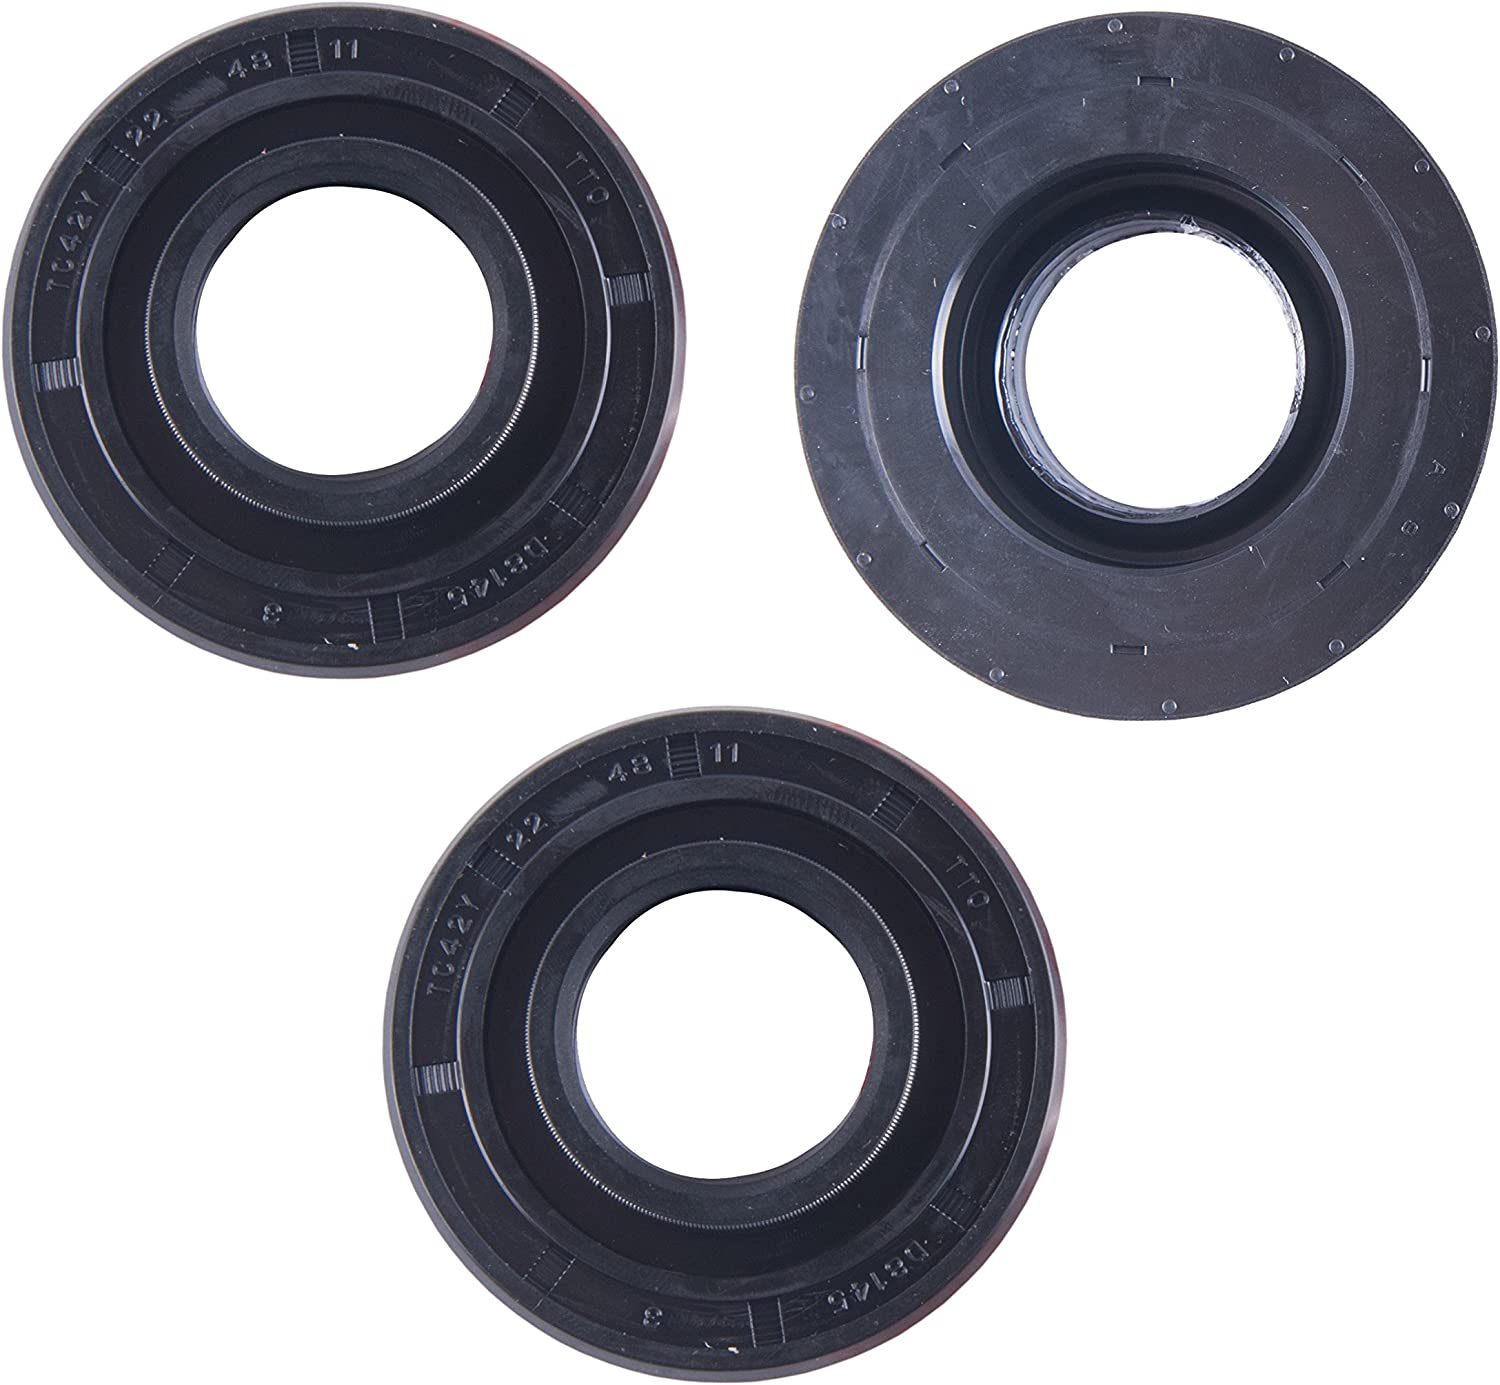 East Lake Axle Front differential seal kit compatible with Honda TRX 400//500 Foreman//Rubicon 2001-2004